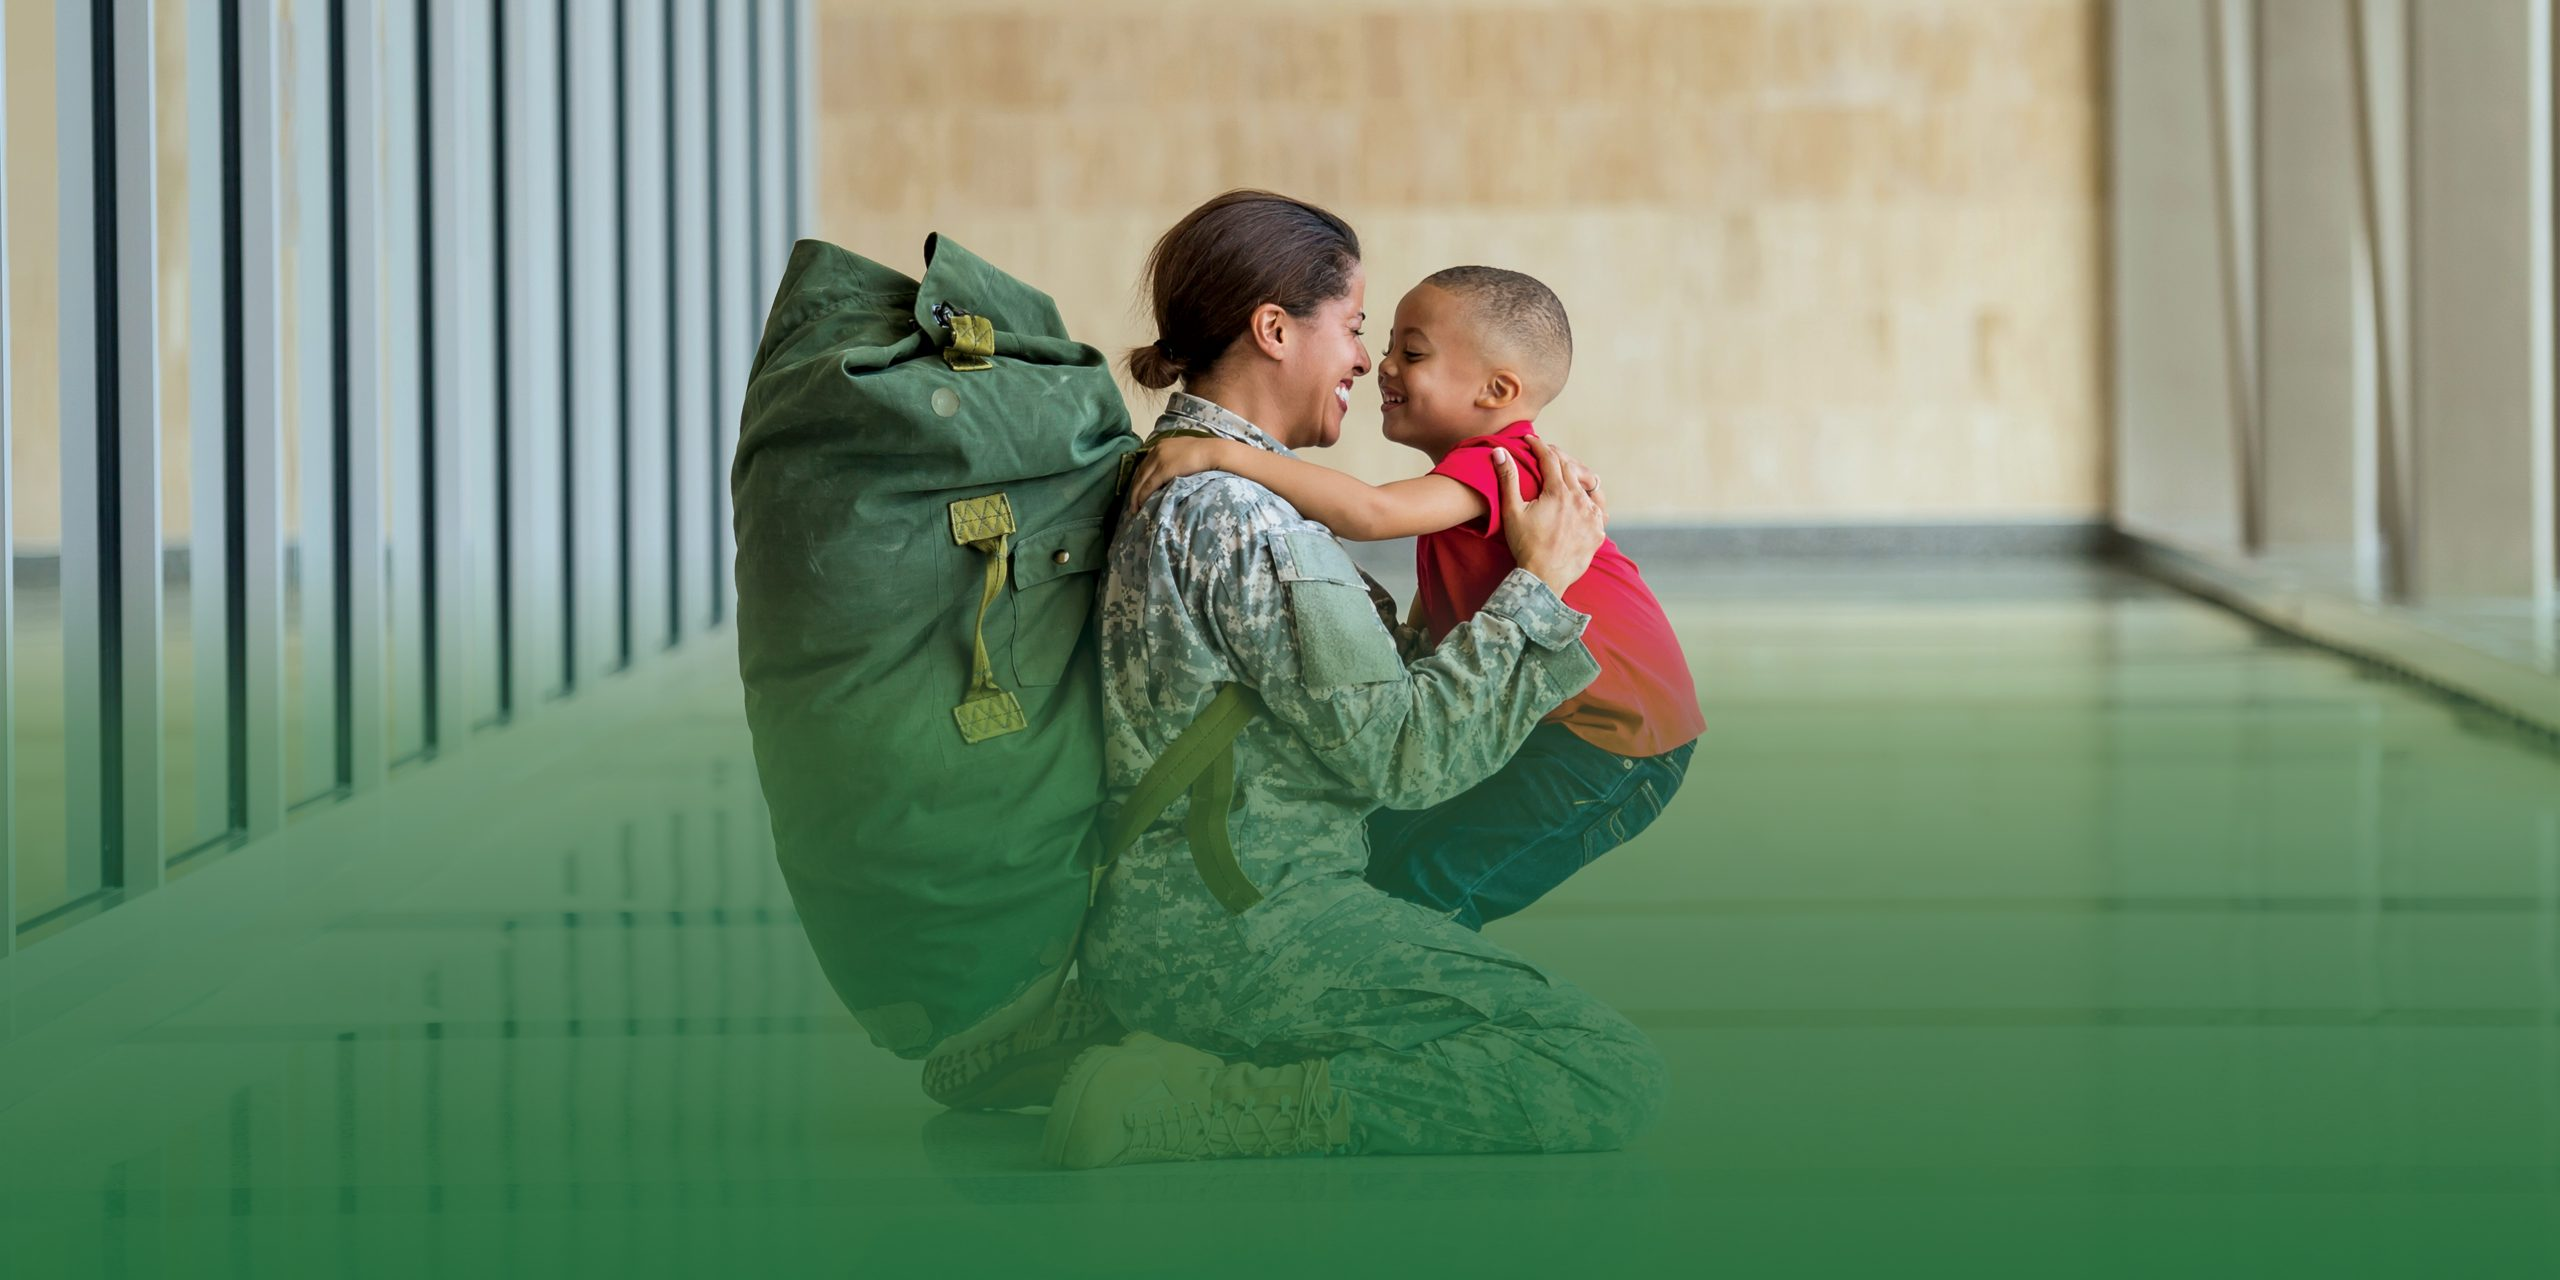 Caring for our Nation's Heroes